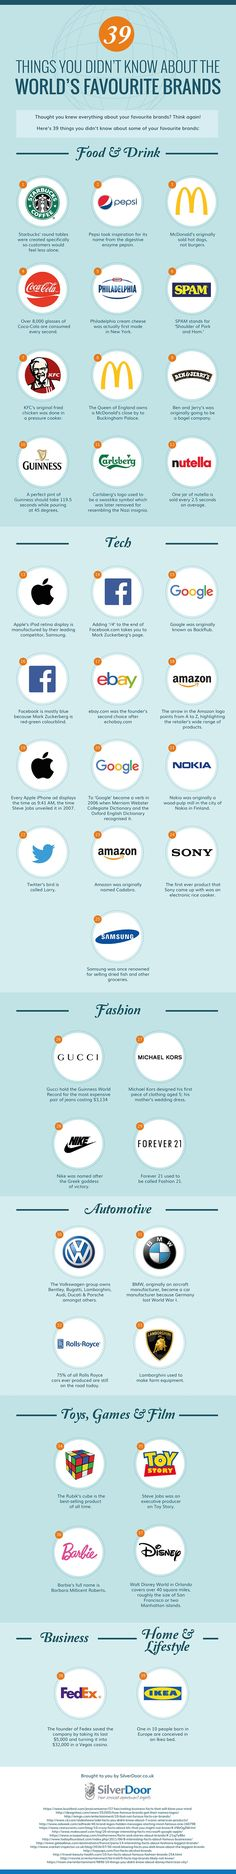 Infographic: 39 Things You Didn't Know About The World's Favorite Brands - DesignTAXI.com